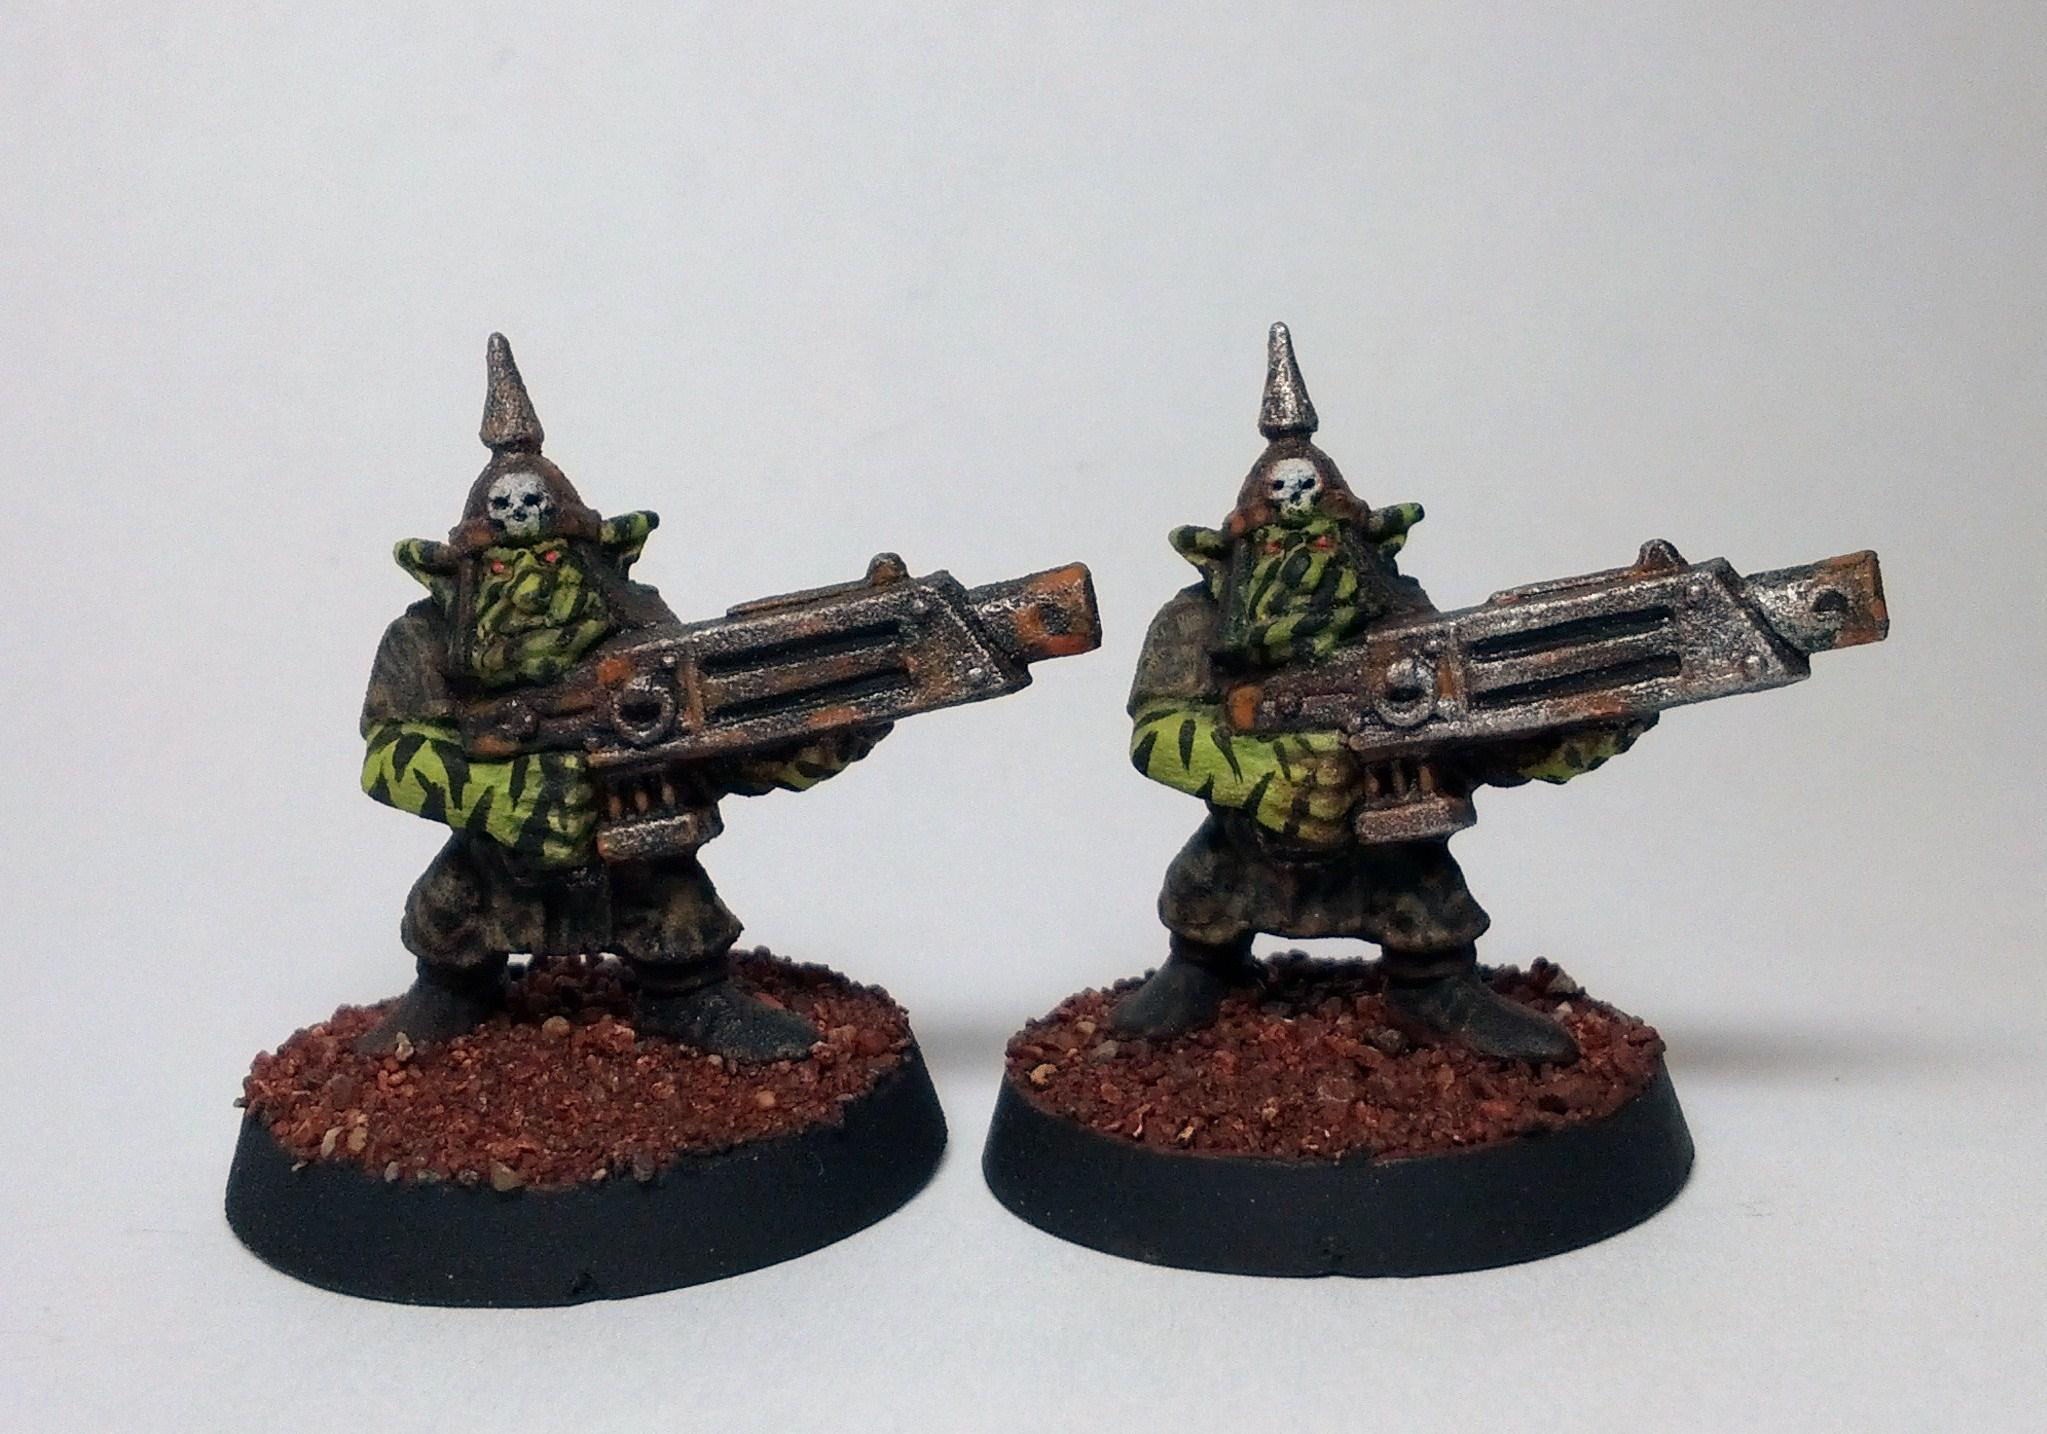 2nd Edition, Blood Axe, Gretchen, Gretchin, Grots, Orks